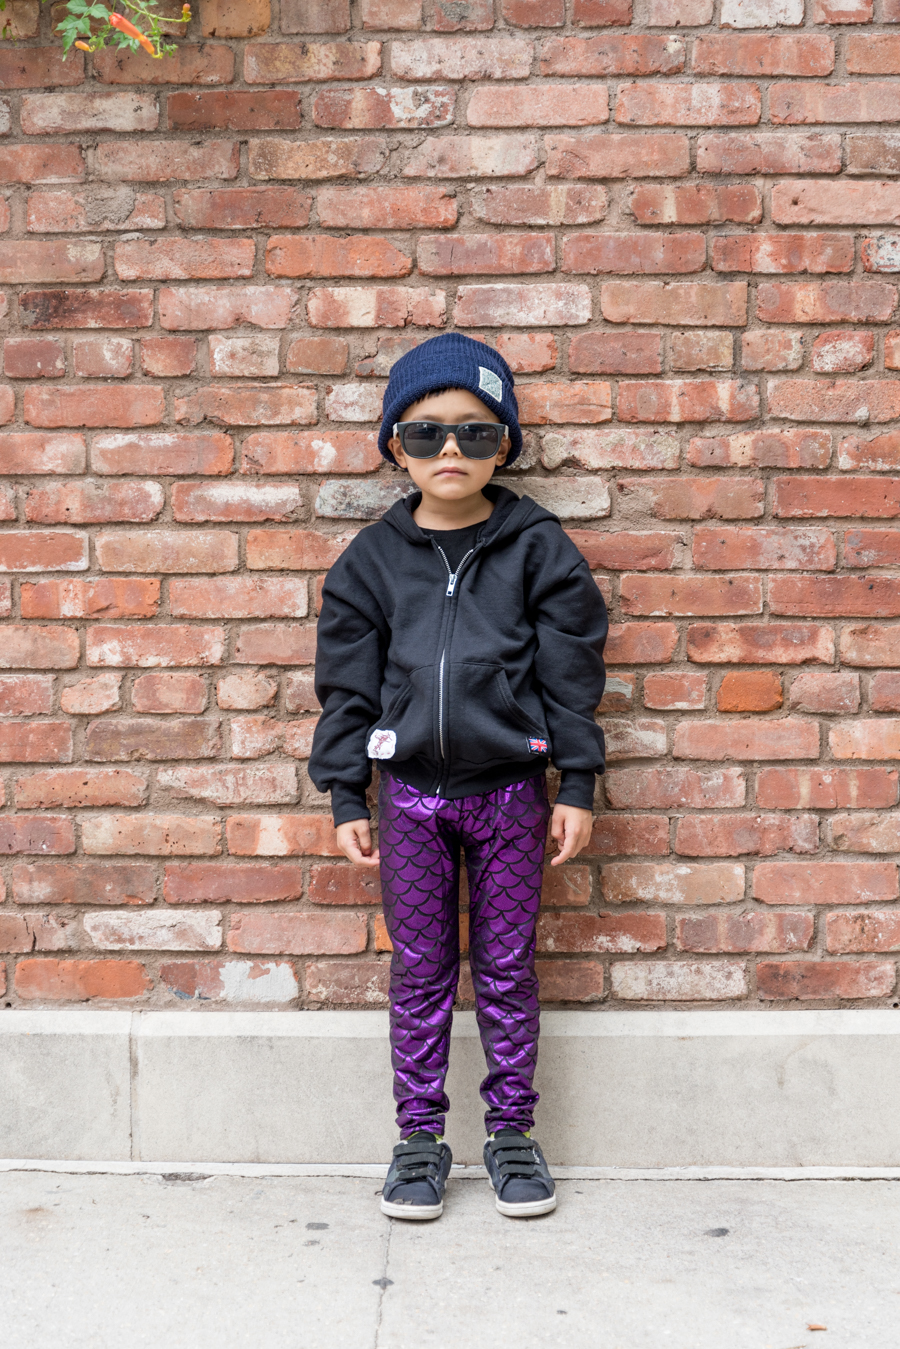 ROCK MAMA NYC LIFESTYLE BLOG-  MOM AND SON MIX AND MATCH STYLING